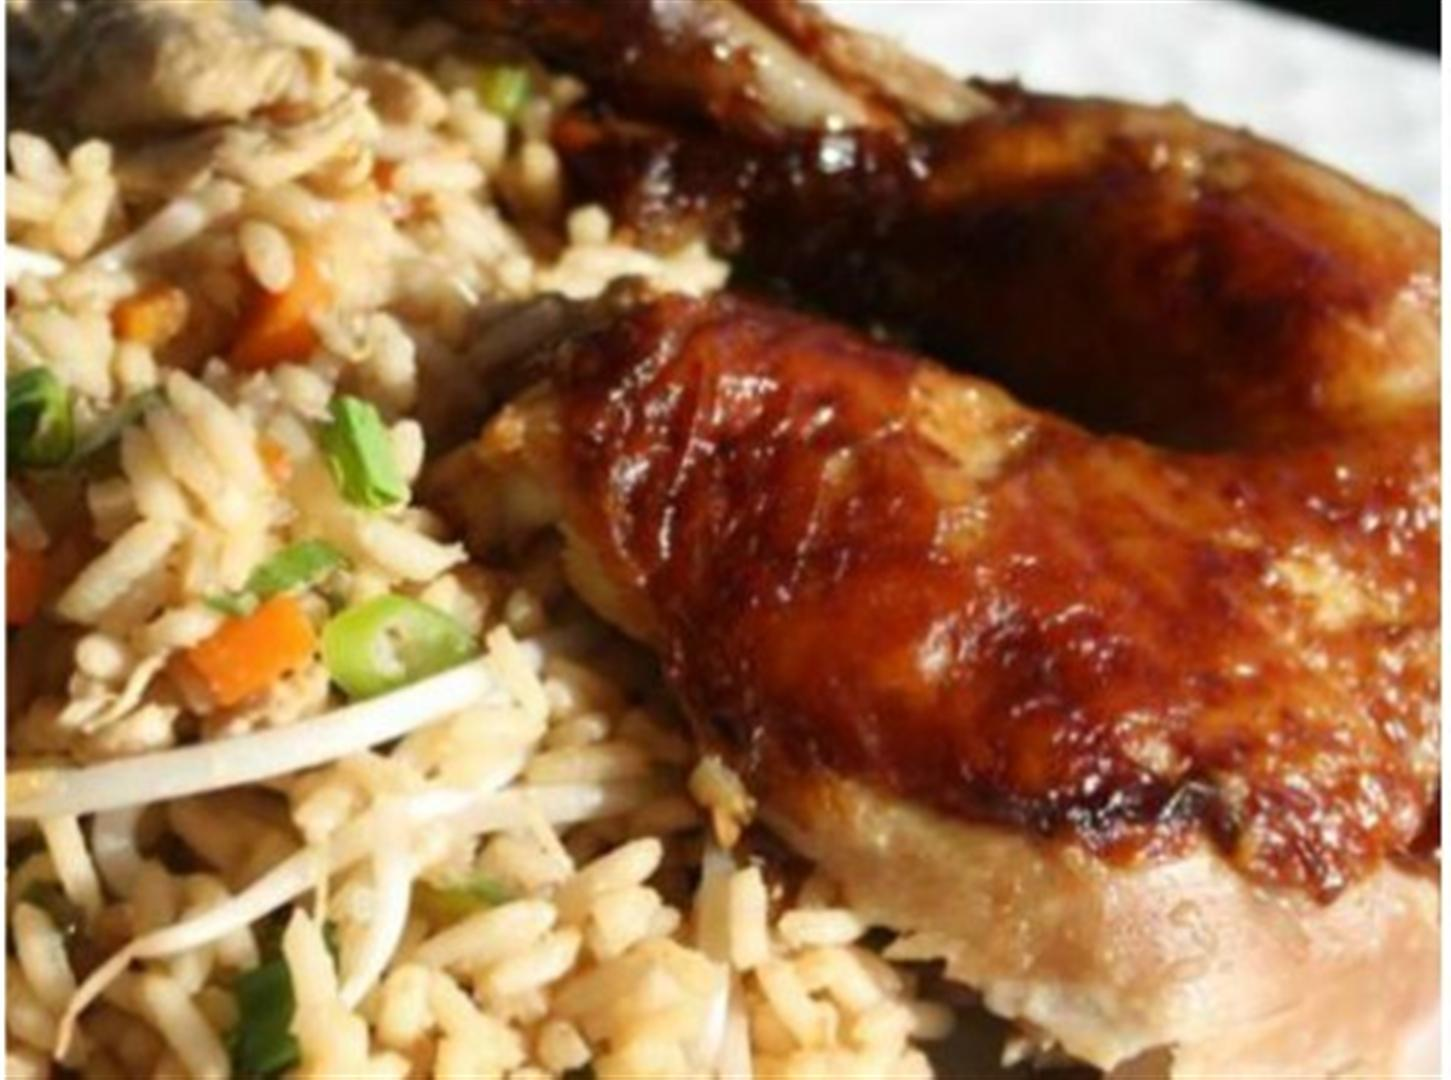 Roasted chicken with caribbean fried rice recipe panlasang pinoy roasted chicken with caribbean fried rice recipe panlasang pinoy recipes ccuart Gallery